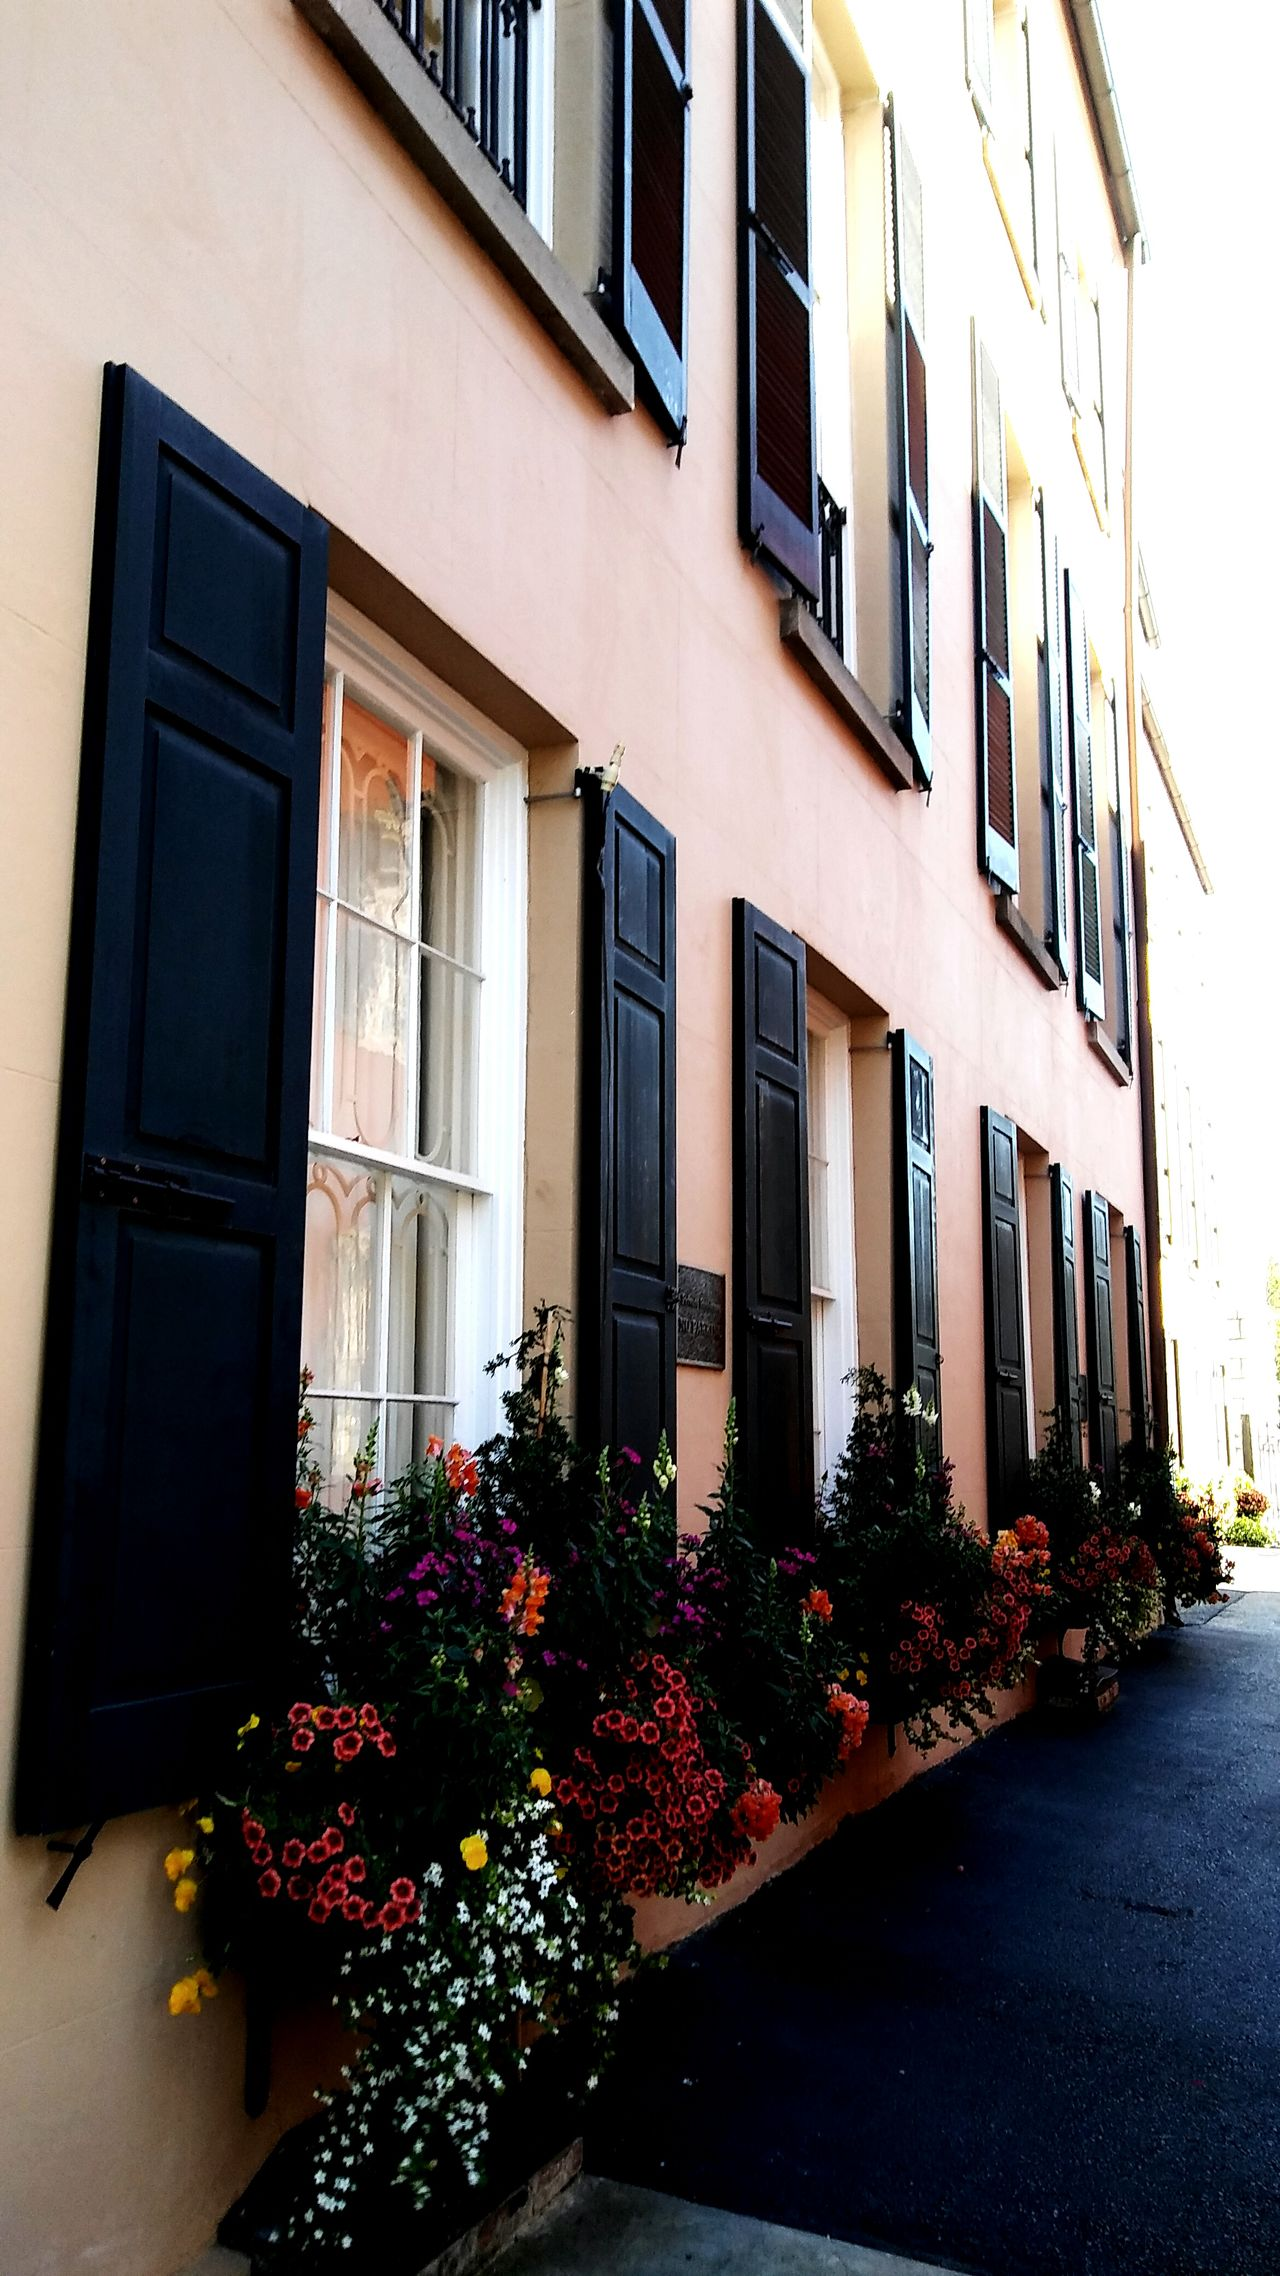 Downtown Charleston Architecture Built Structure Old-fashioned Building Exterior NewToEyeEm The Low Country South Carolina Southern Charm Travel The Street Photographer - 2017 EyeEm Awards